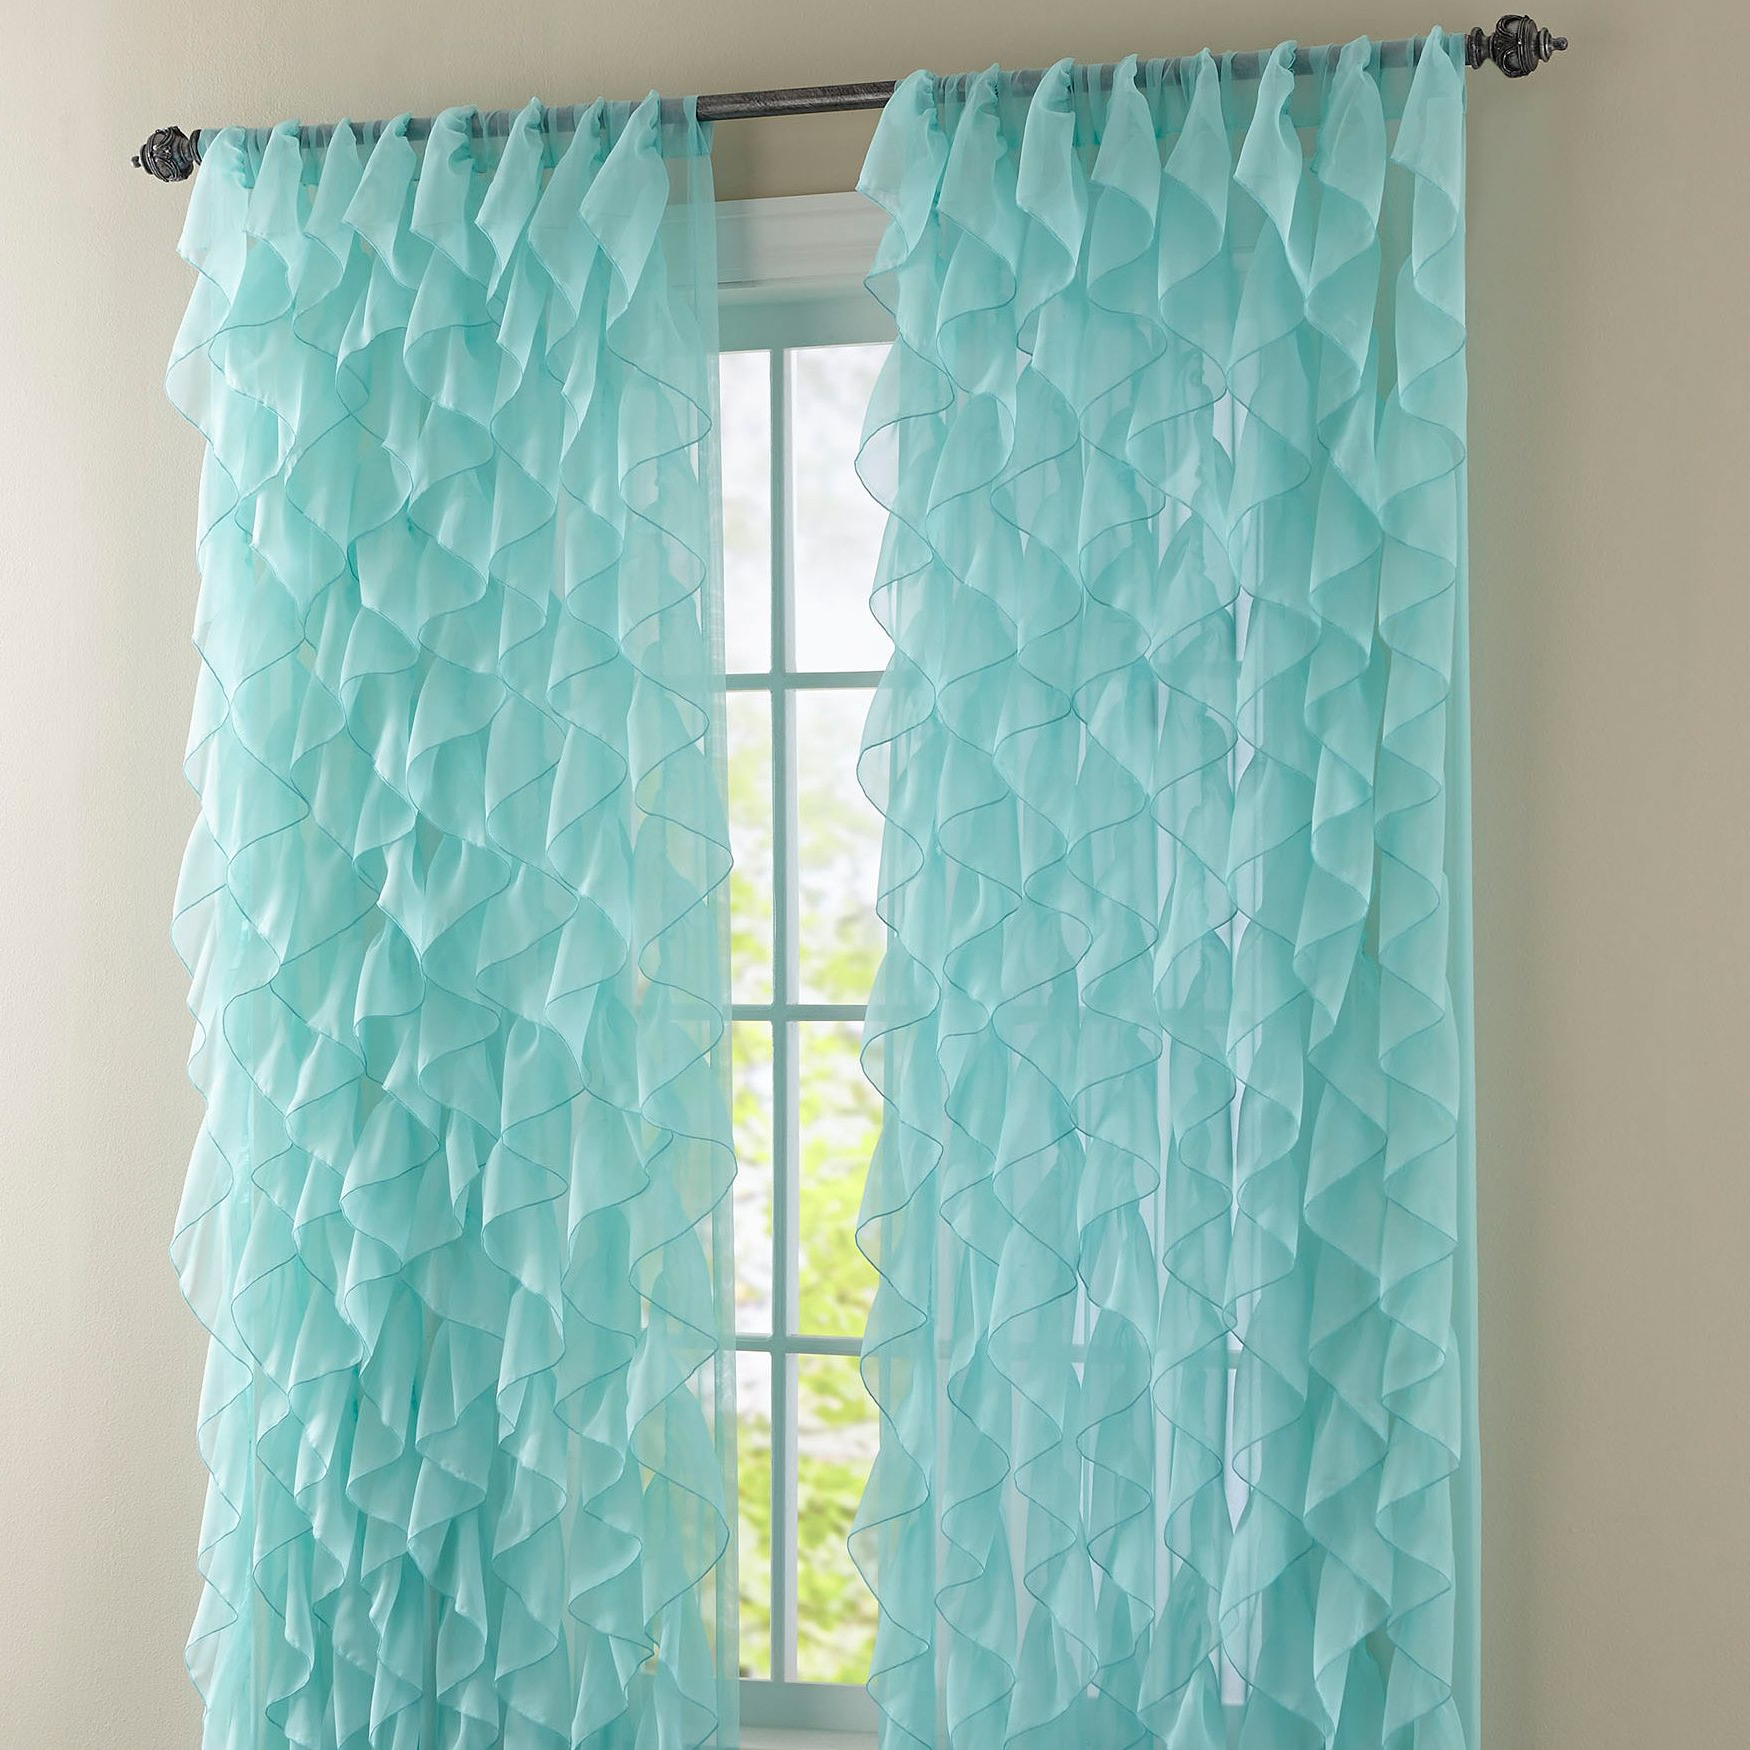 Chic Sheer Voile Vertical Ruffled Window Curtain Tiers Pertaining To Widely Used These Sheer Voile Curtains Display An Extravagance Of (View 19 of 20)